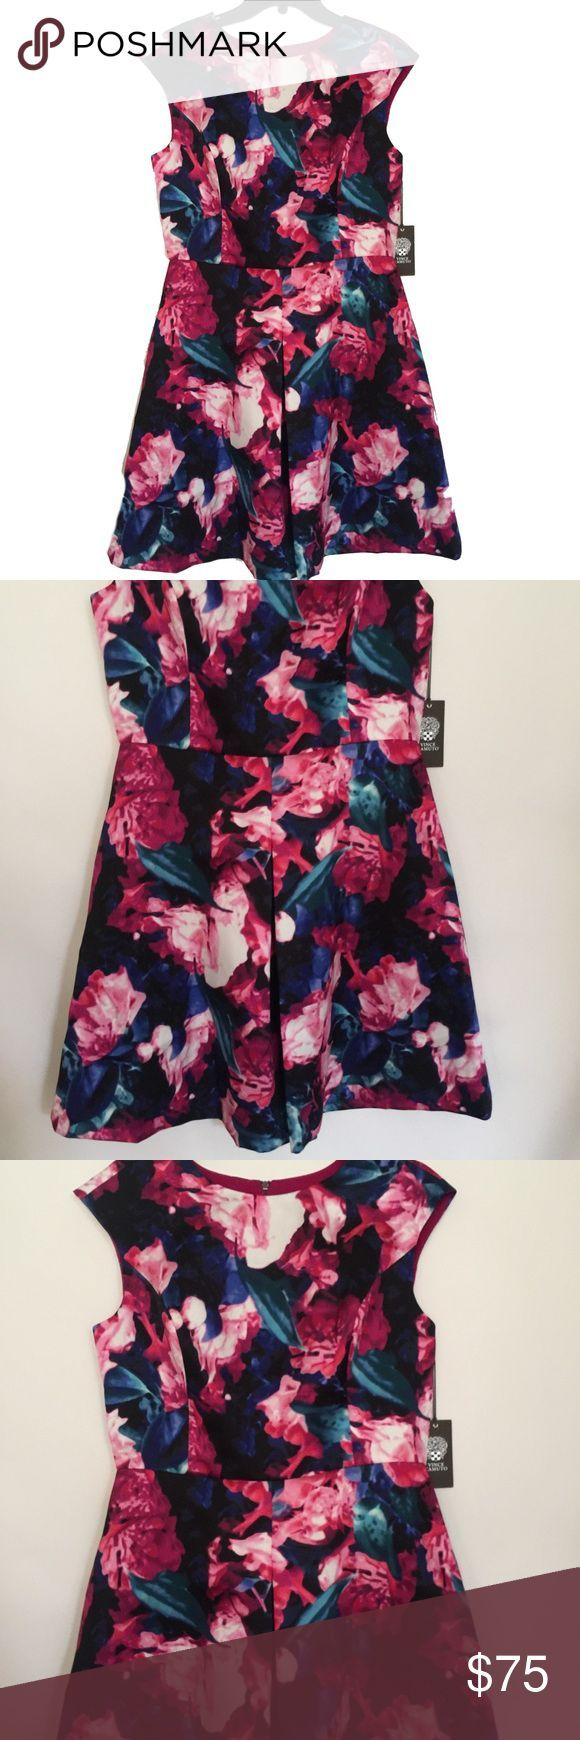 Vince Camuto Floral Sleeveless Dress Size 10 M NWT Vince Camuto Floral Sleeveles…